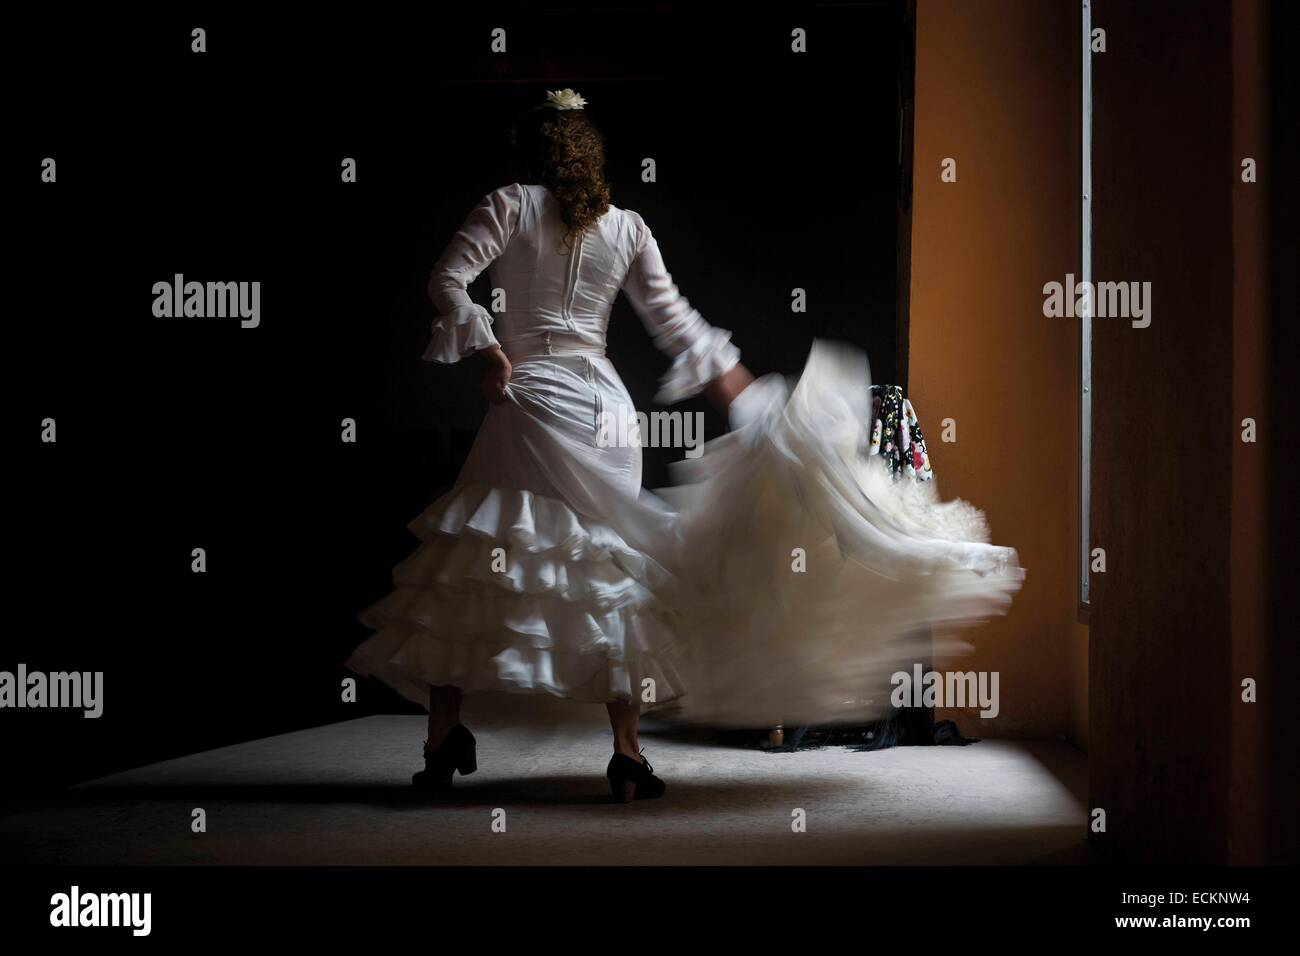 Spain, Andalusia, Seville, flamenco dancer in action - Stock Image